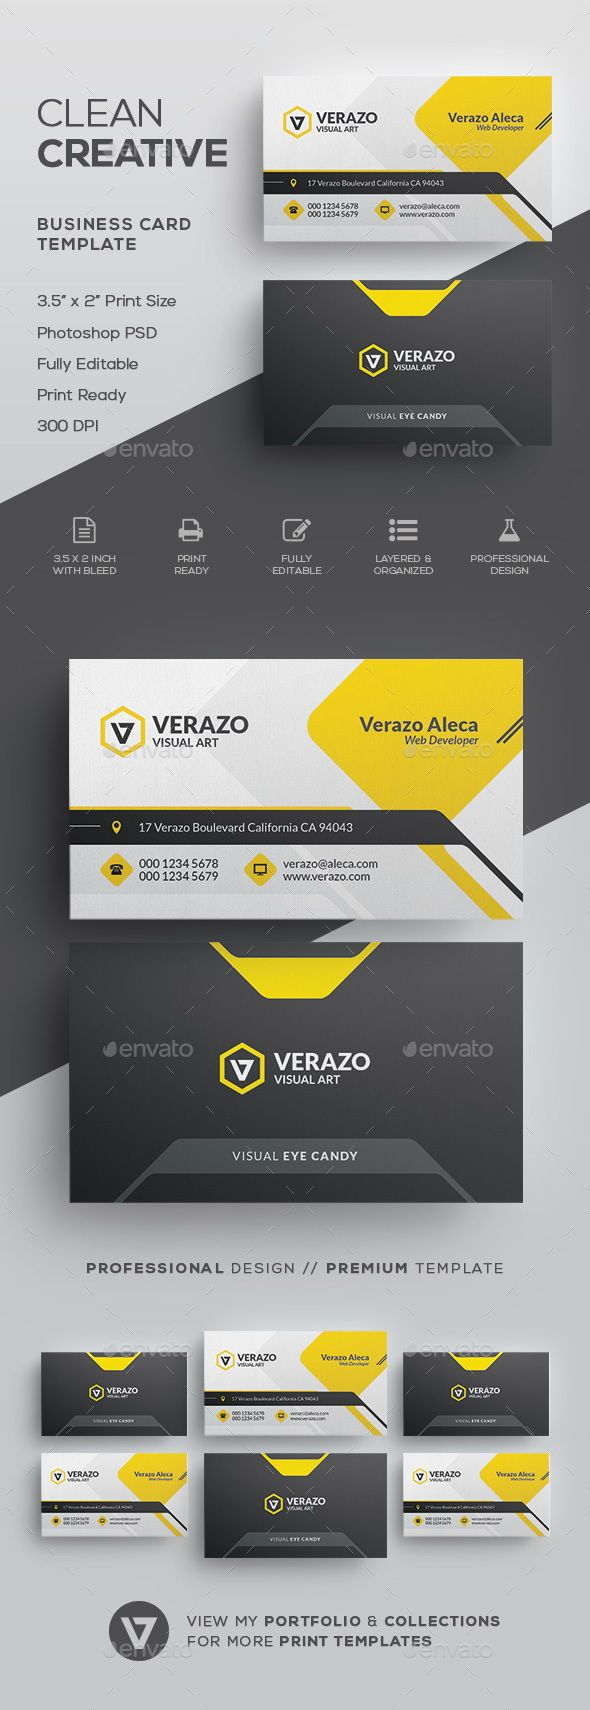 Best 25+ High quality business cards ideas on Pinterest   Buy ...